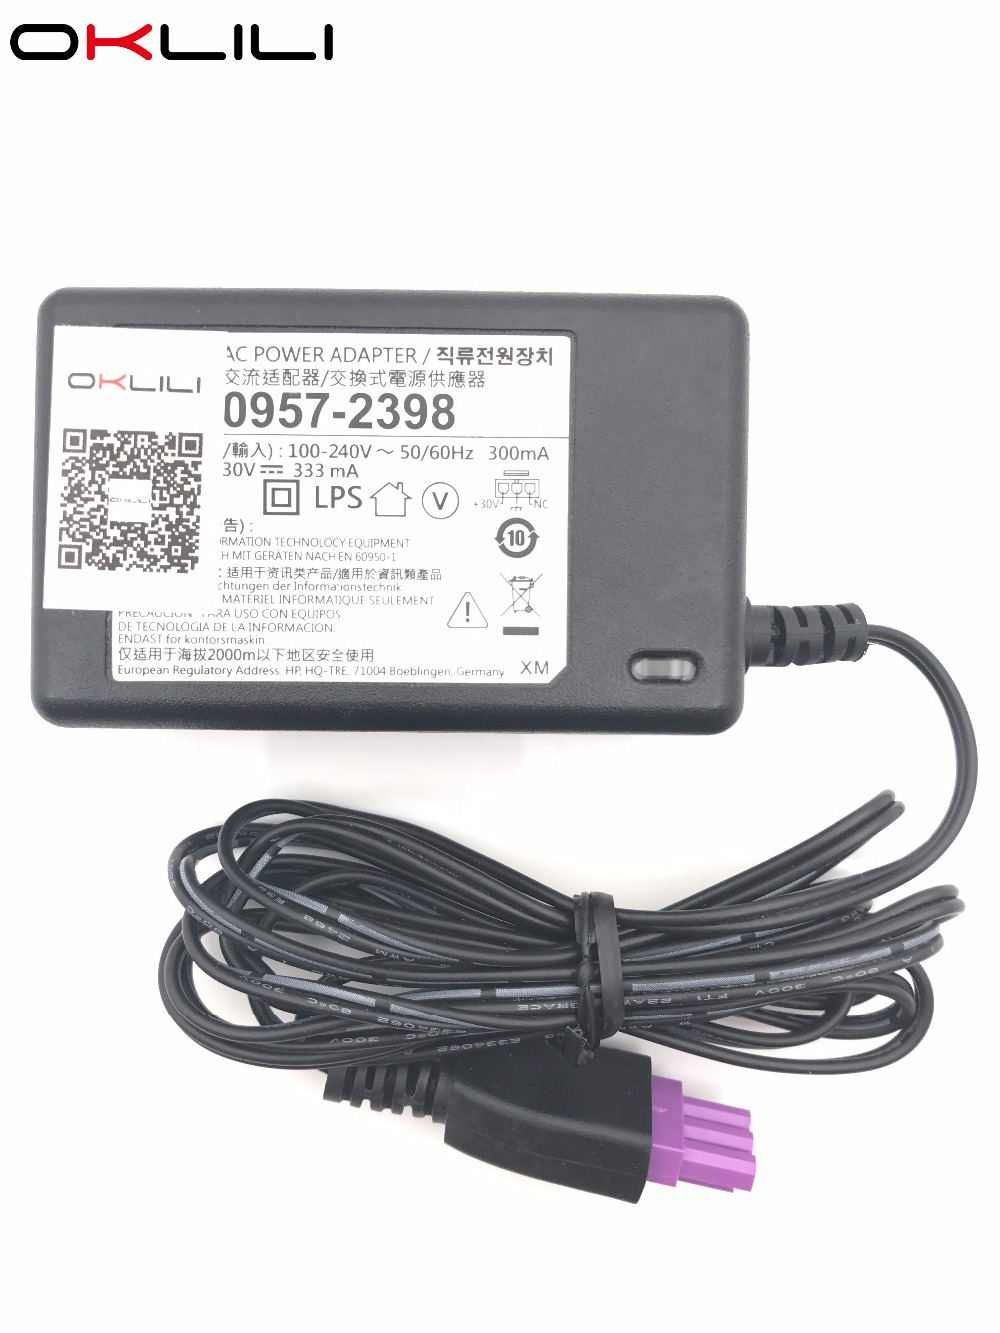 0957-2290 0957-2286 0957-2398 AC Power Adapter Charger 100-240V 50/60Hz 300mA 30V 333mA For HP Deskjet 1050 1000 2050 2000 2060